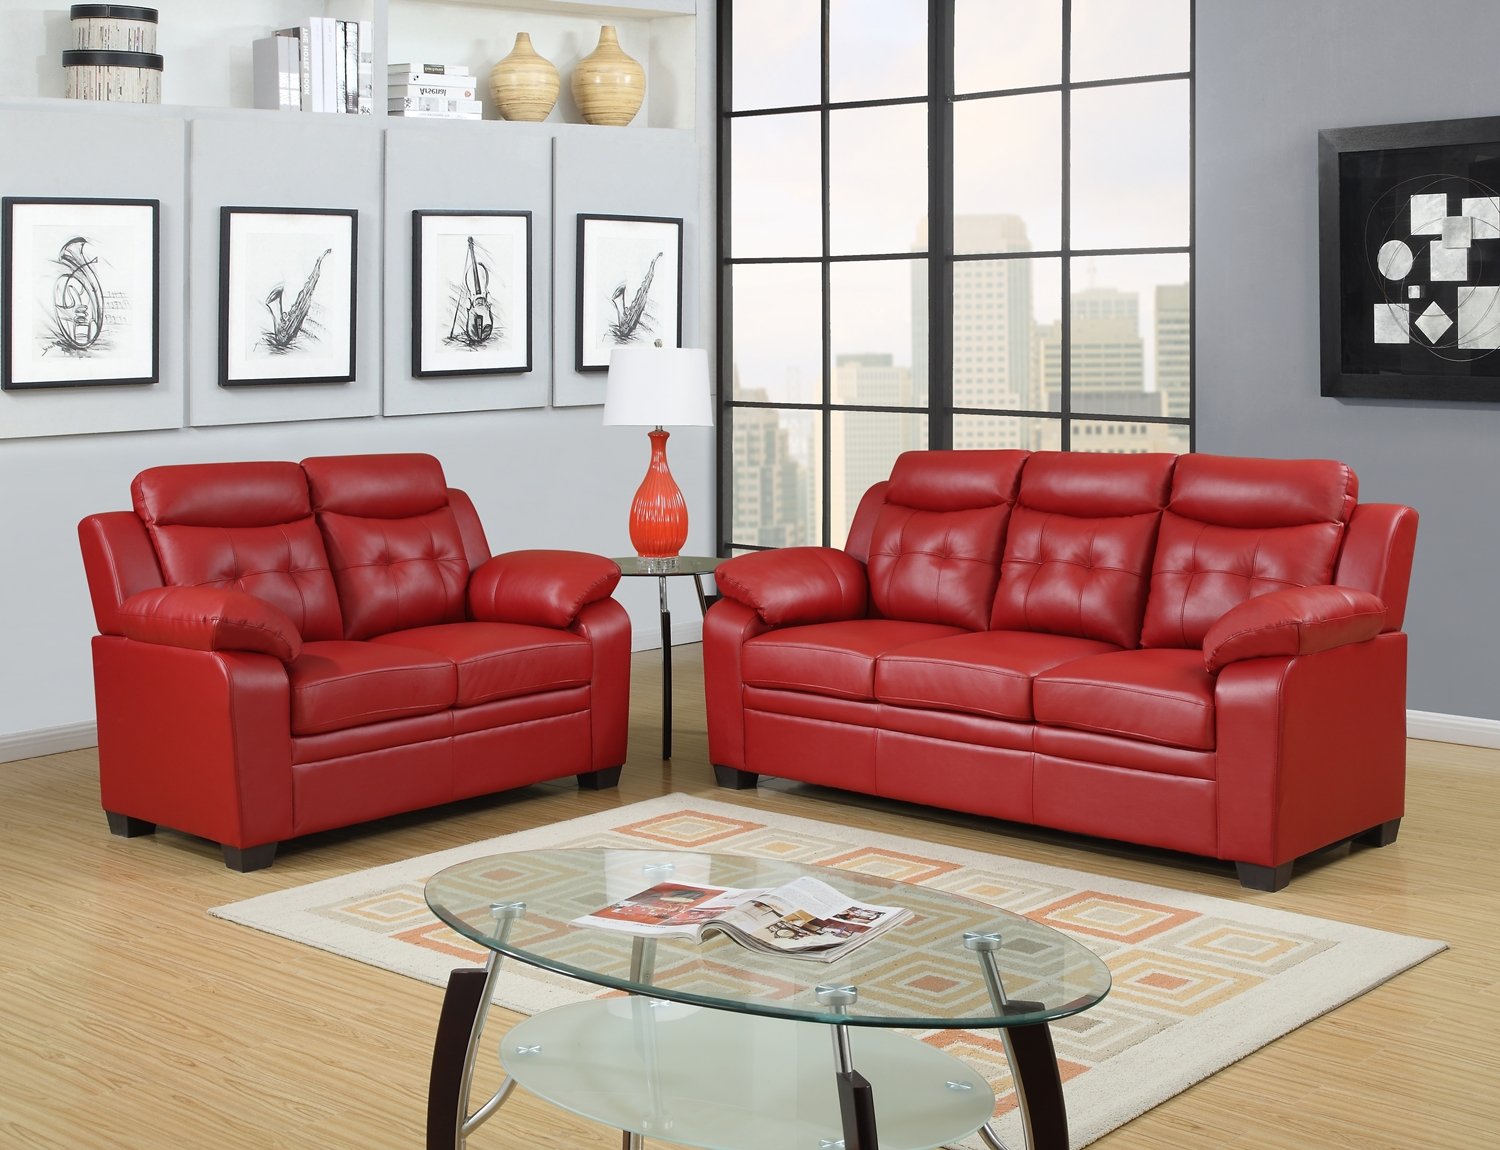 Red Leather Living Room Furniture Roselawnlutheran